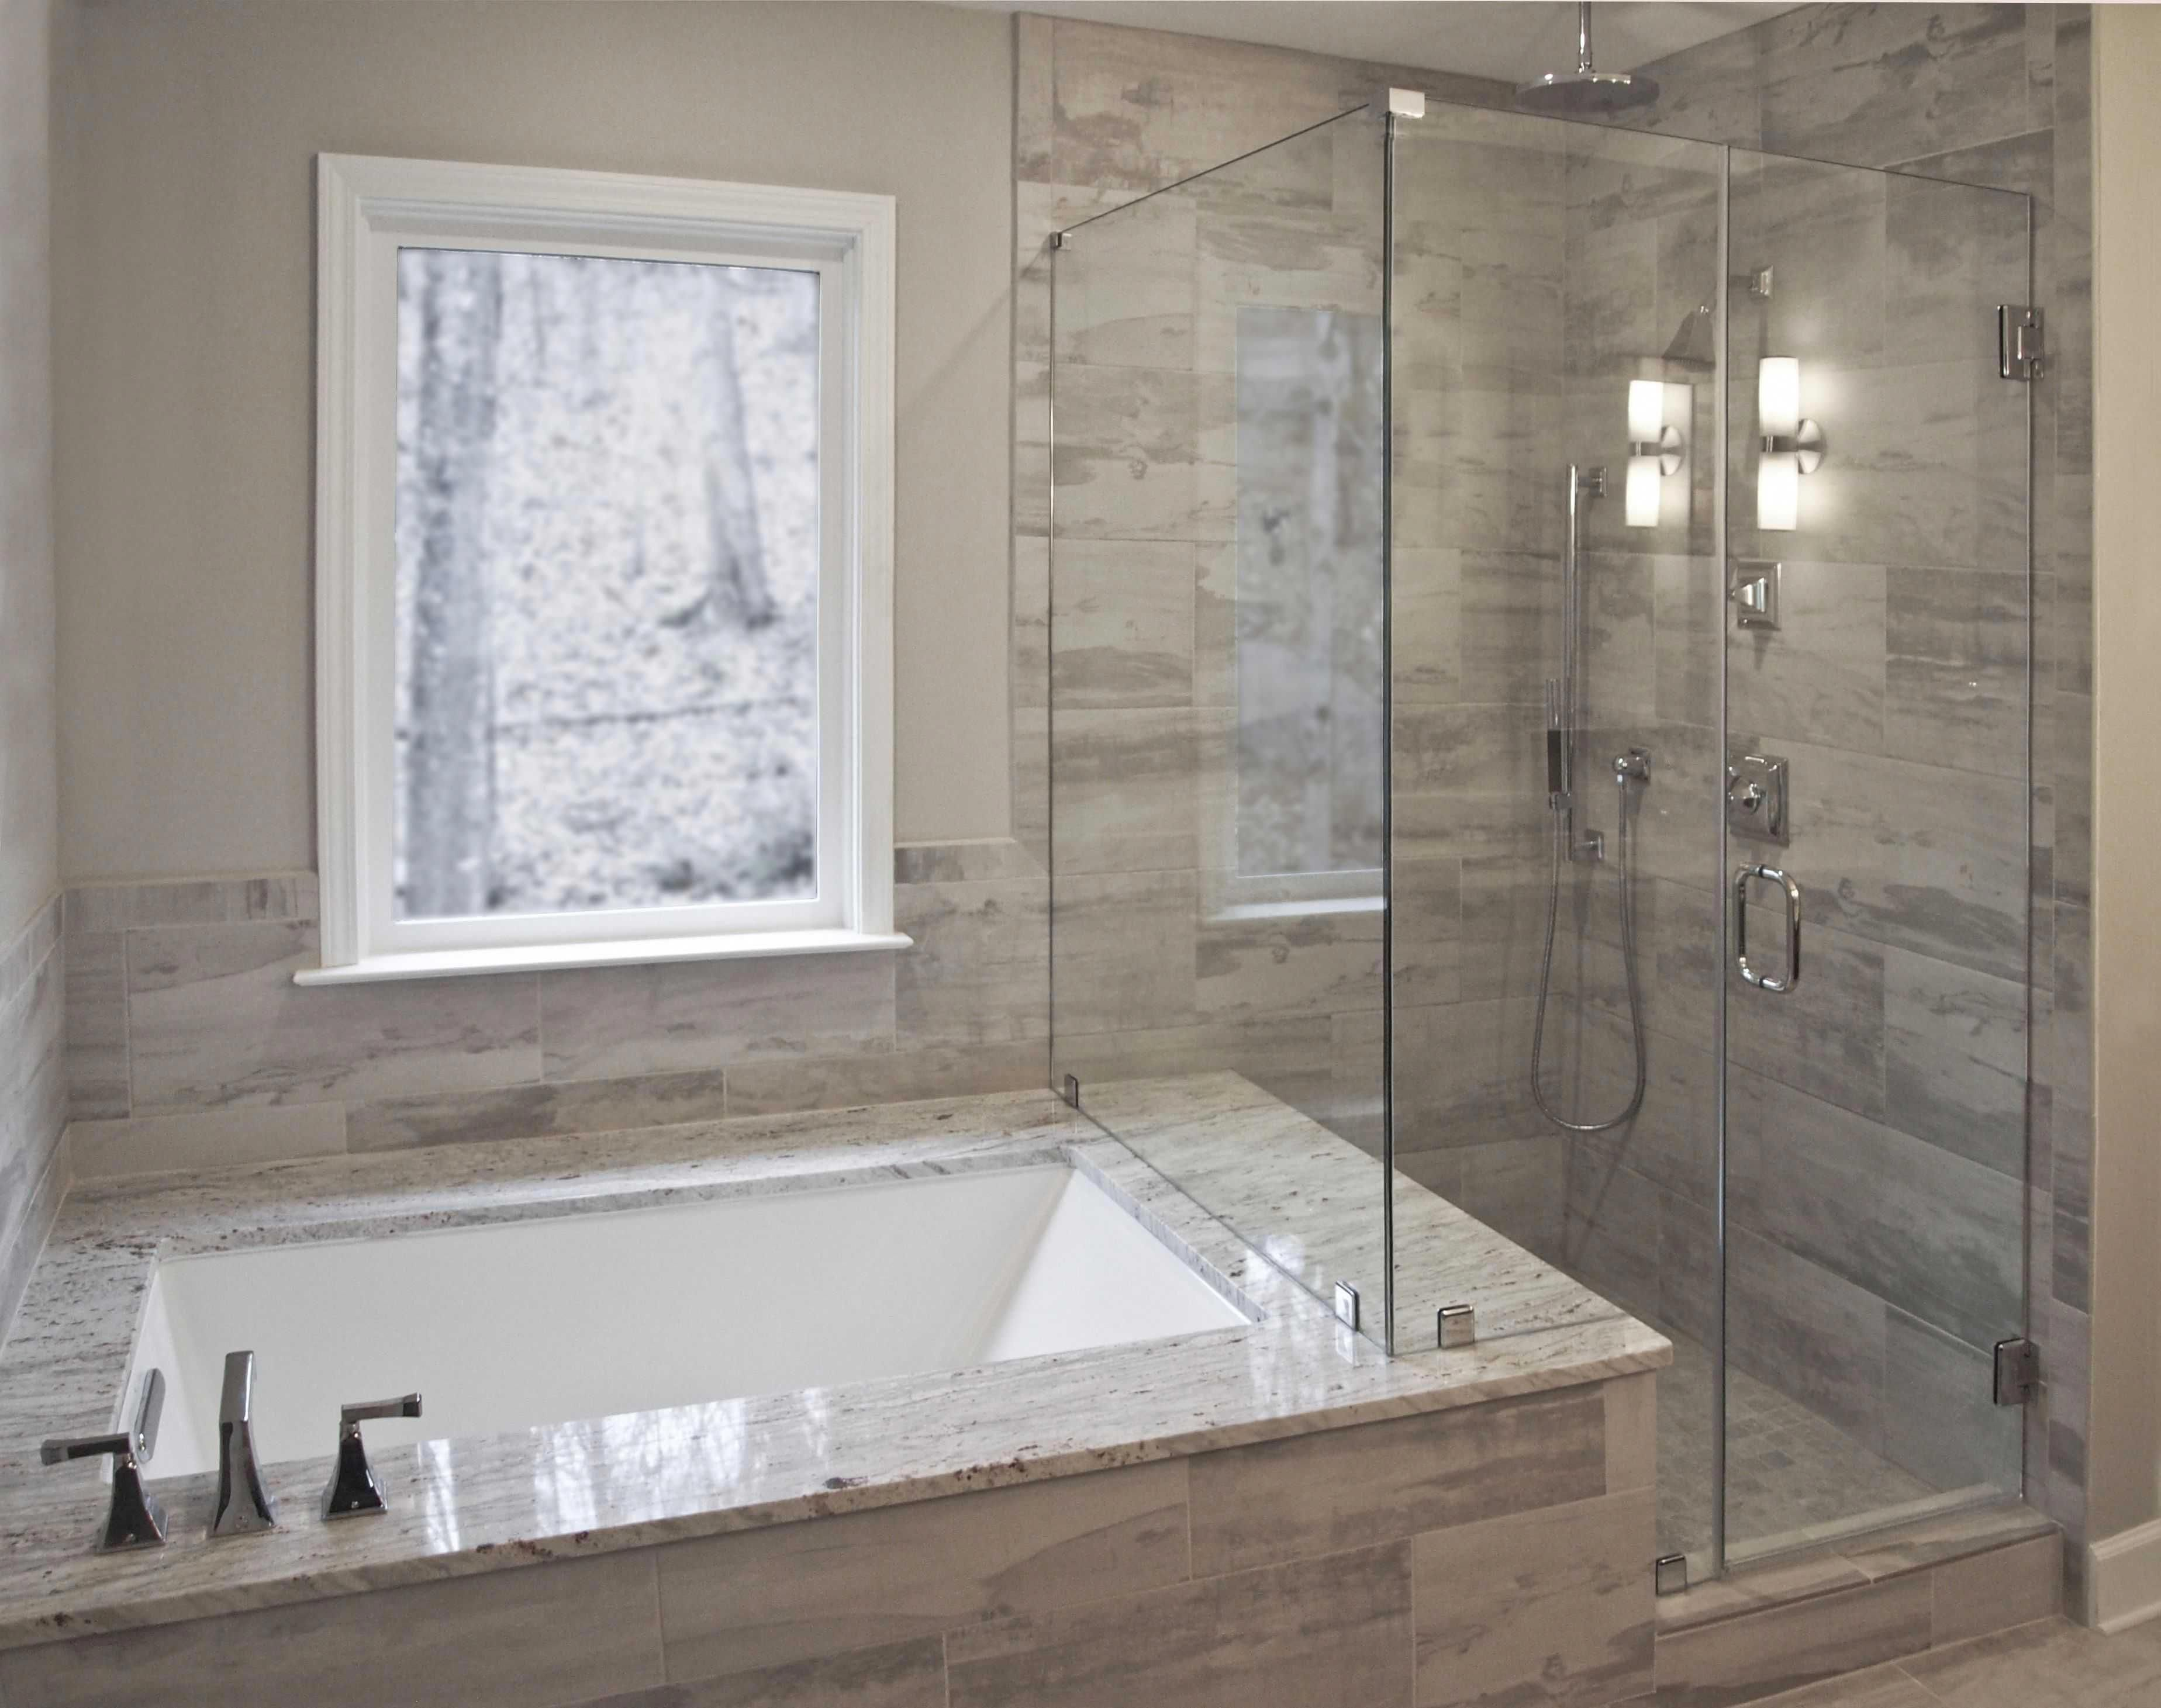 Stand Up Shower Remodel On A Budget And Corner Shower Remodel